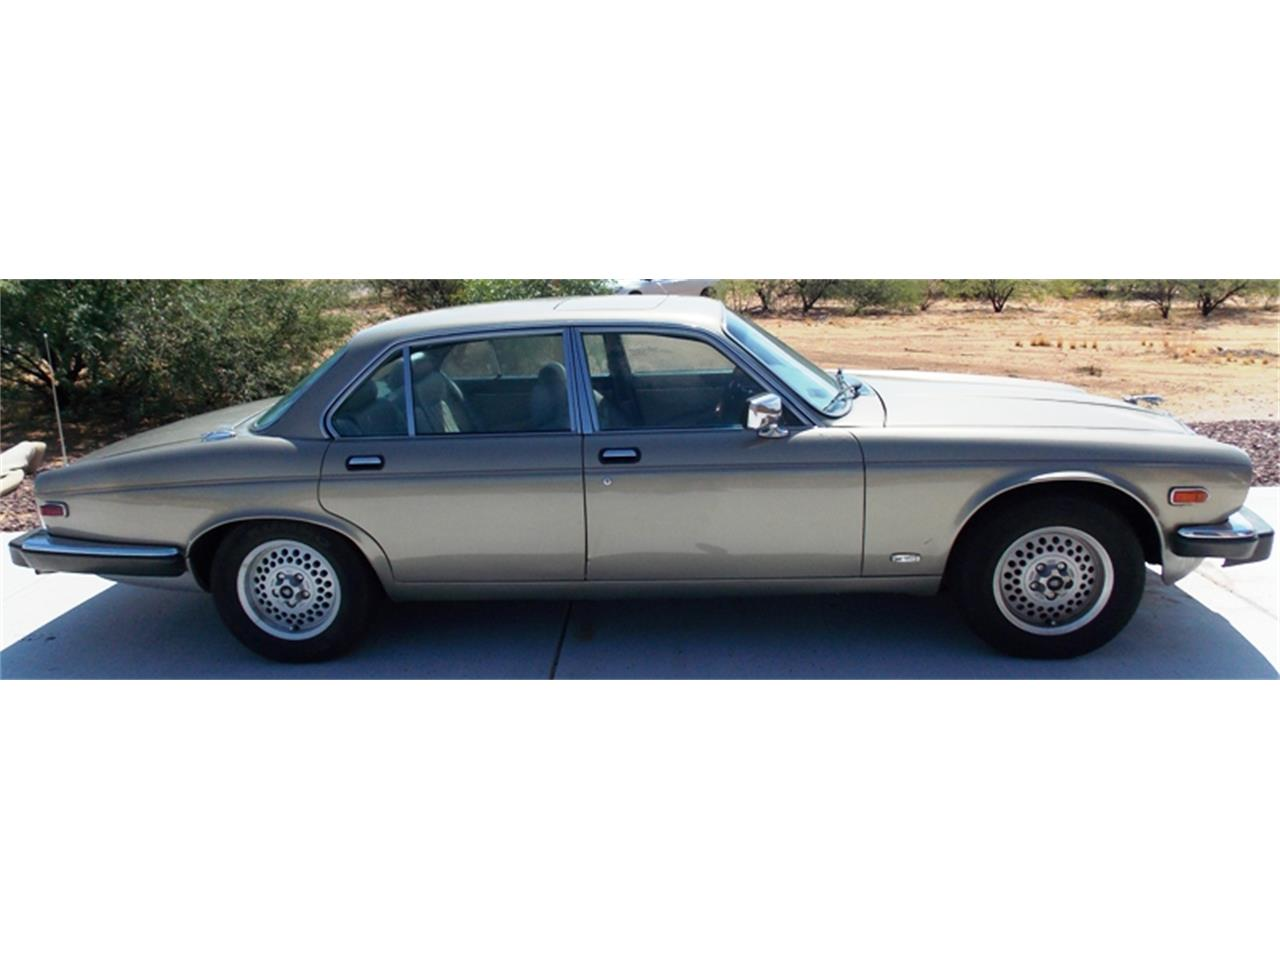 Large Picture of 1986 XJ6 located in AZ - Arizona - $7,500.00 - QNNV